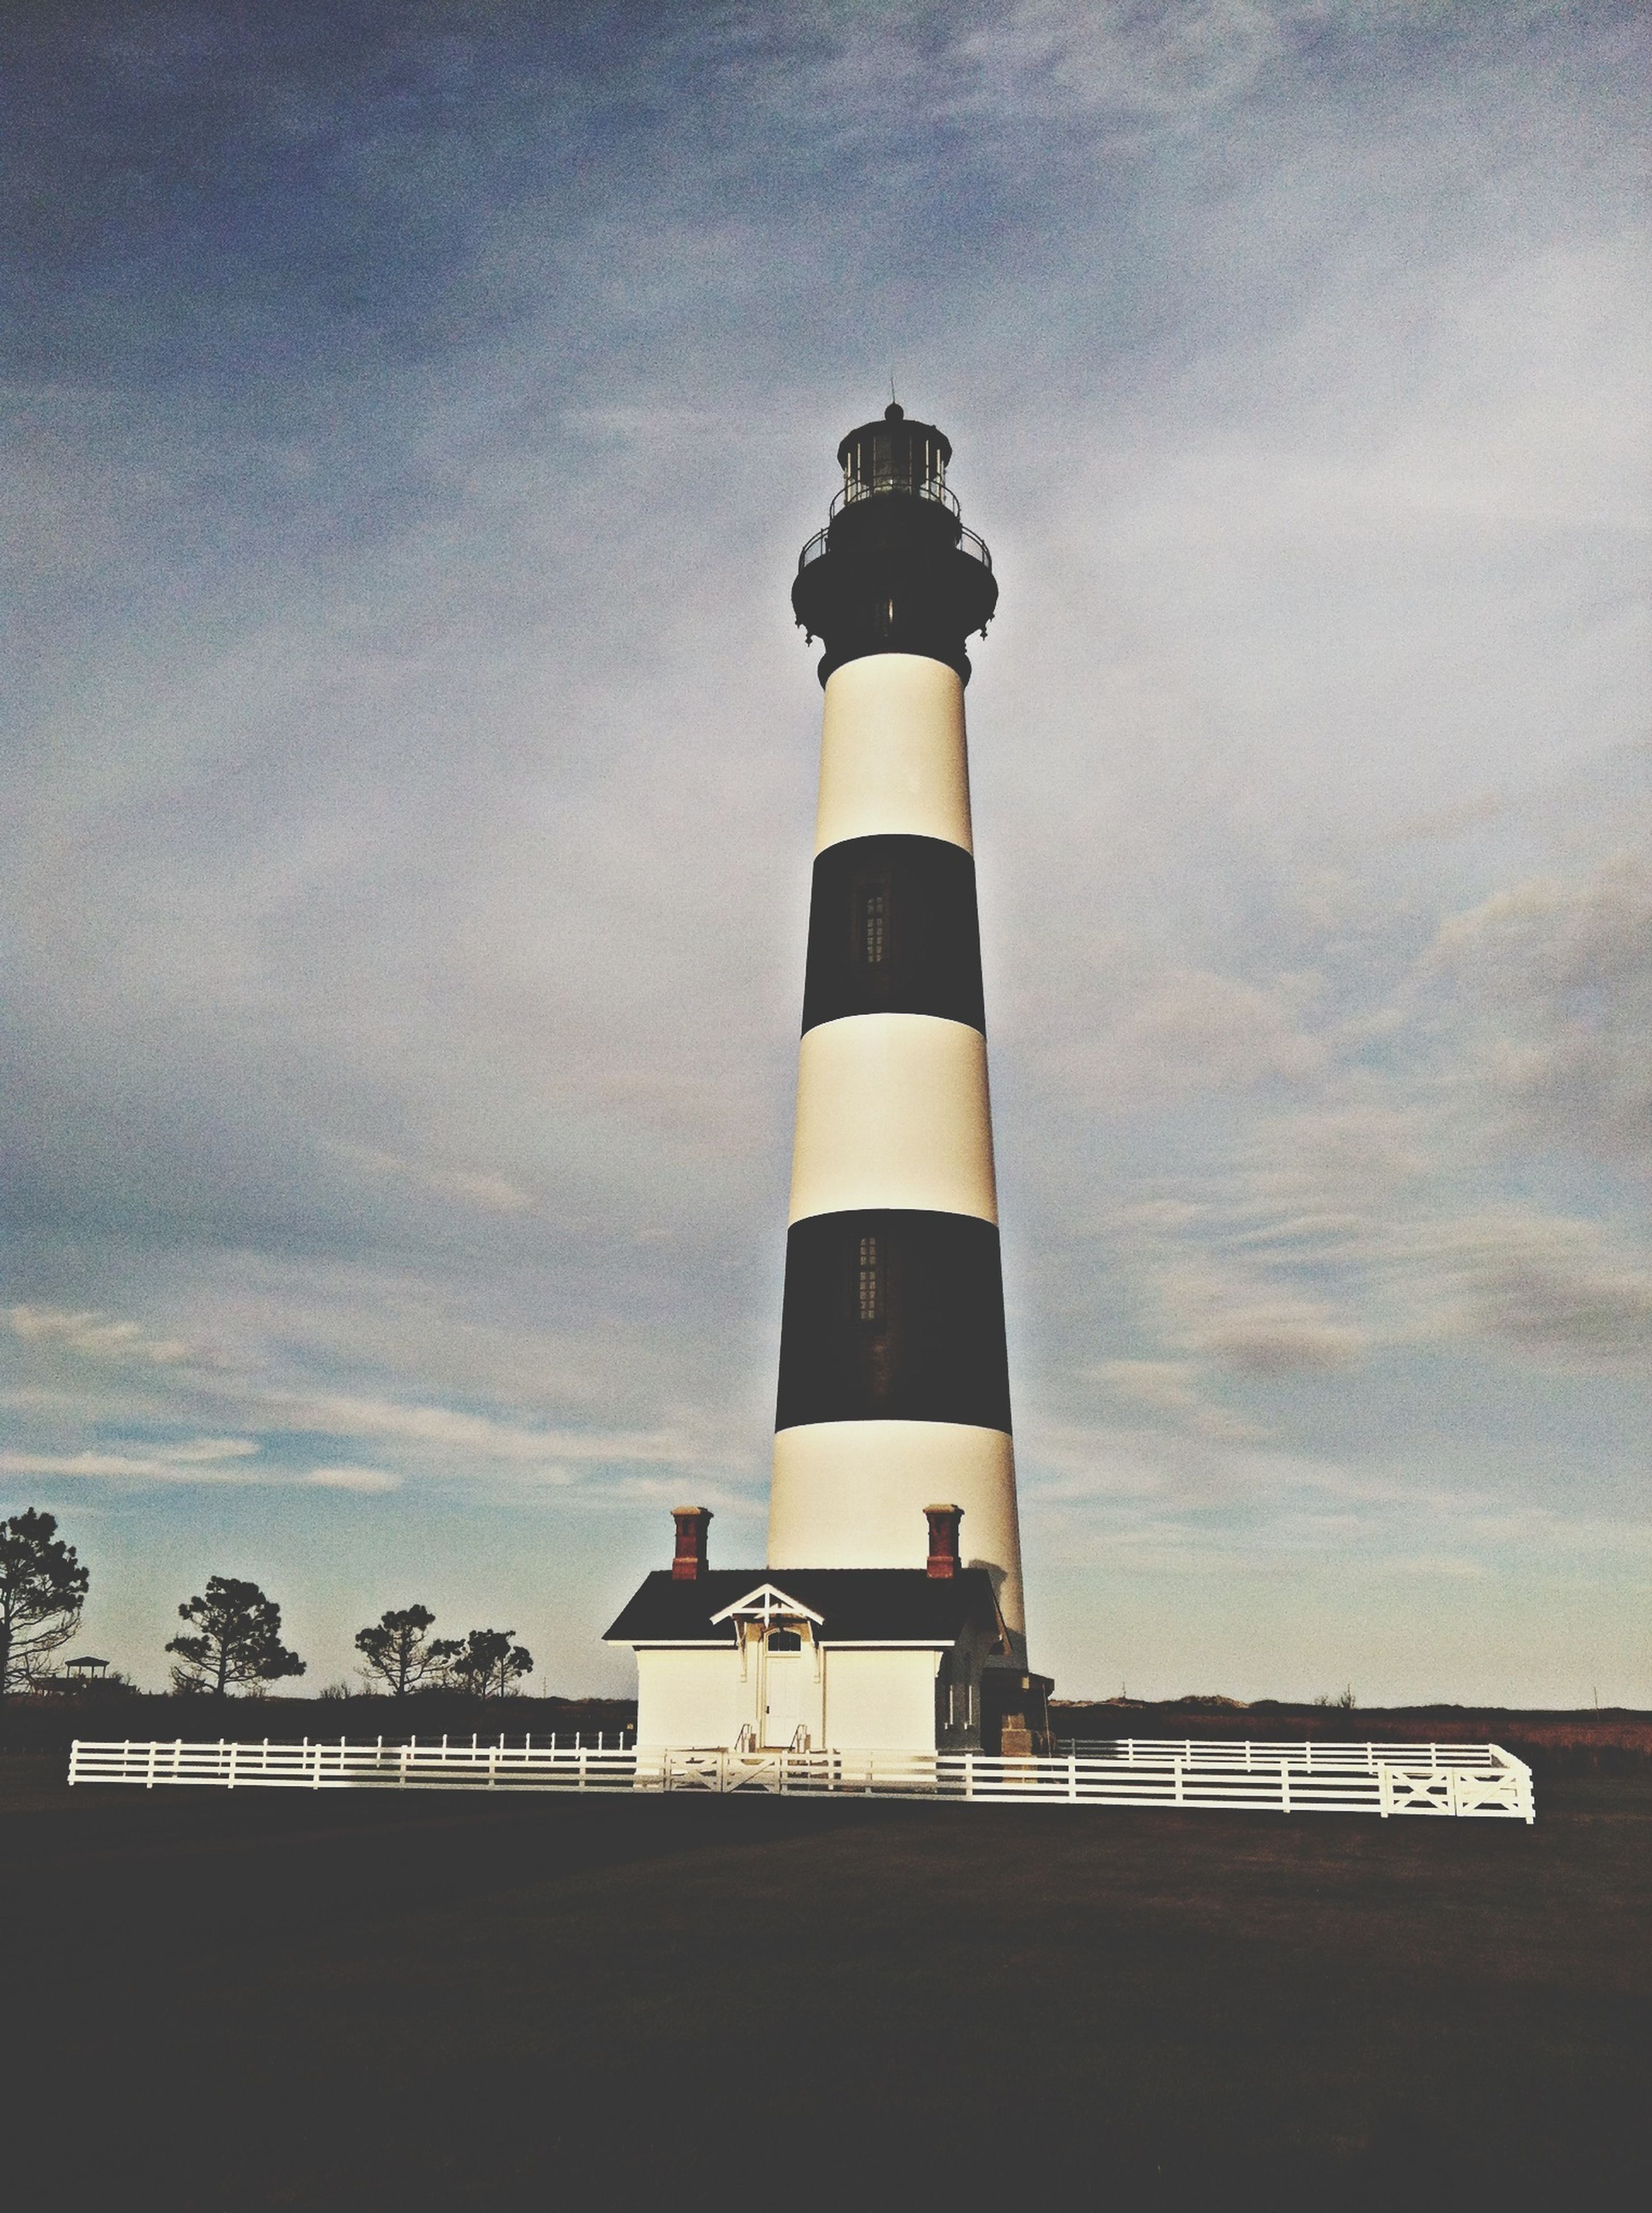 lighthouse, guidance, sky, built structure, architecture, direction, building exterior, protection, safety, sea, cloud - sky, tower, security, low angle view, tranquility, nature, outdoors, no people, tranquil scene, cloudy